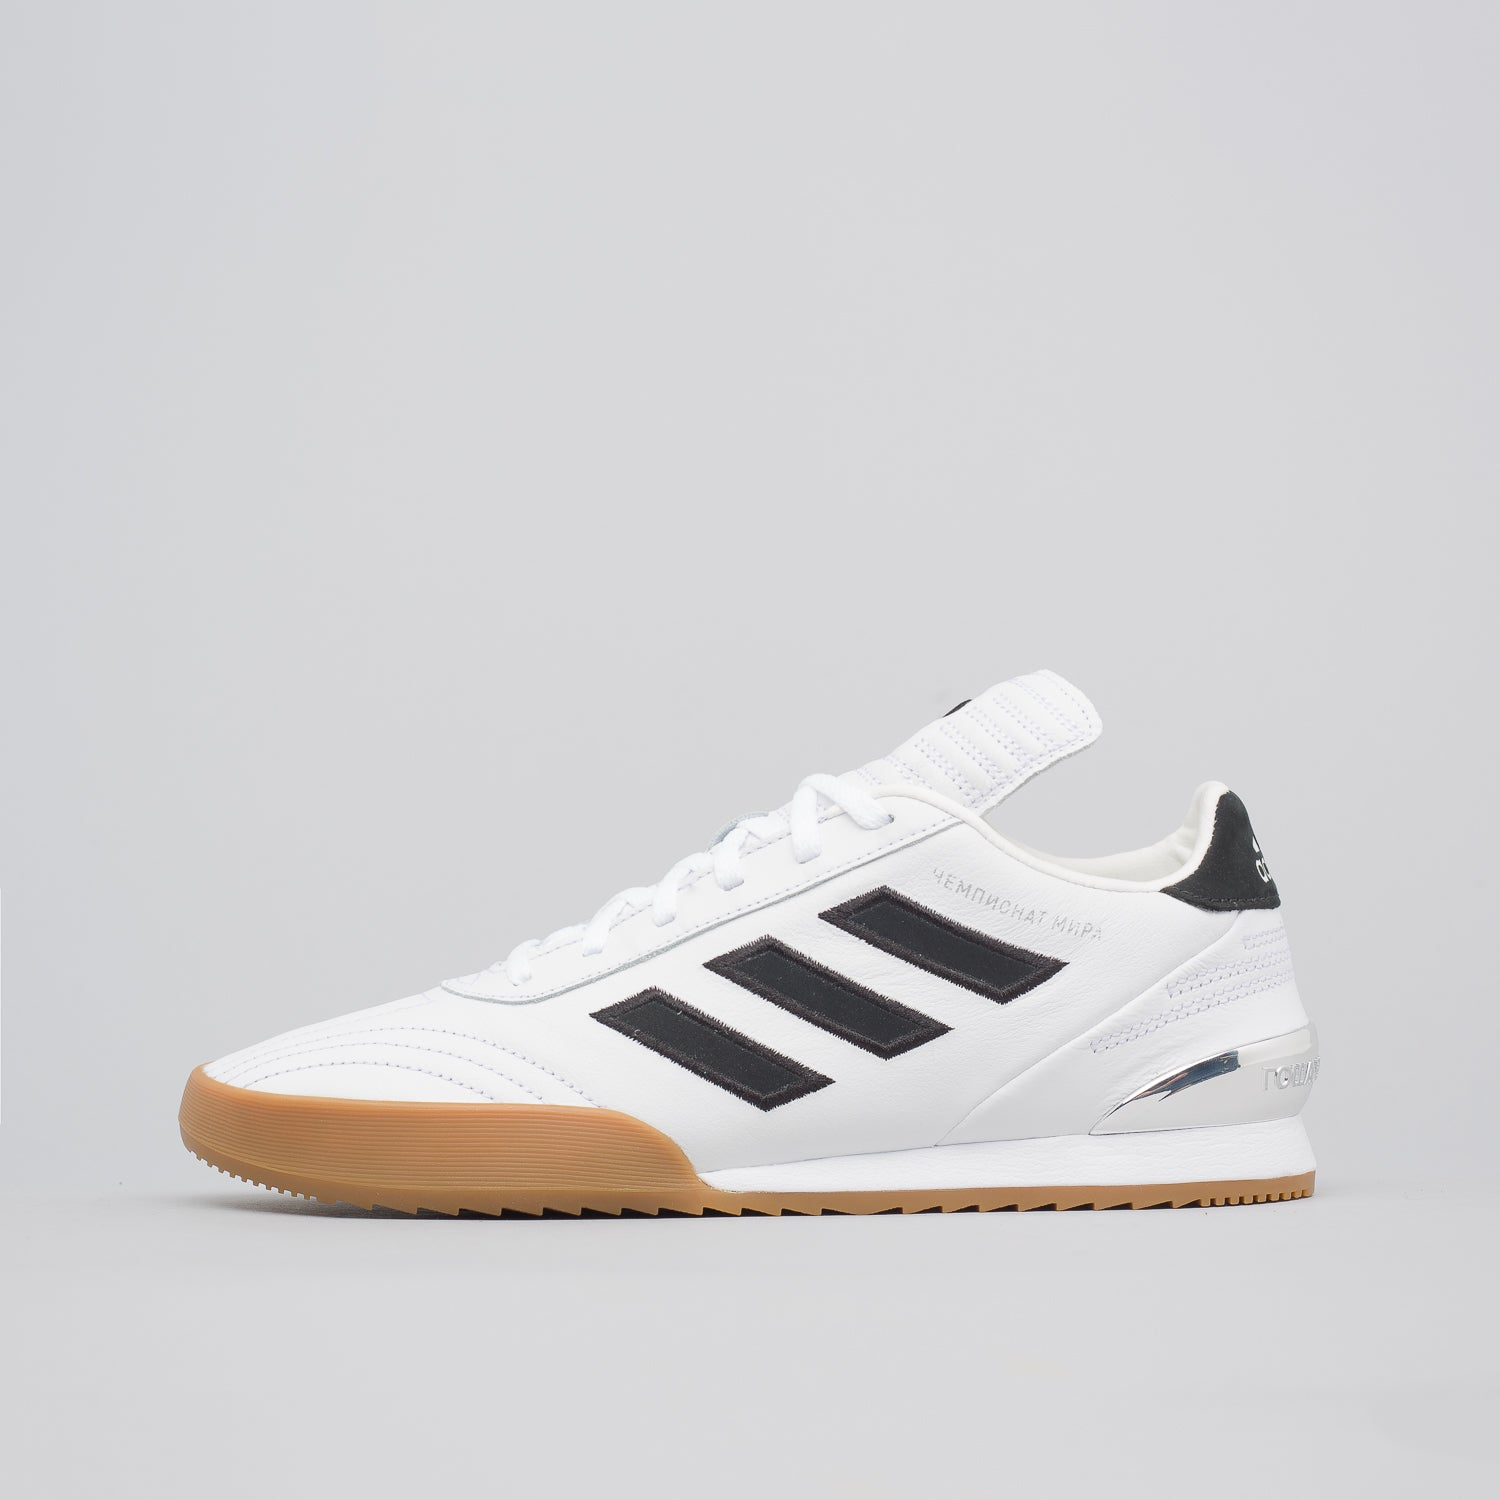 new style 20d79 5dcf6 ... new zealand x adidas copa wc shoe in white 97b24 61d08